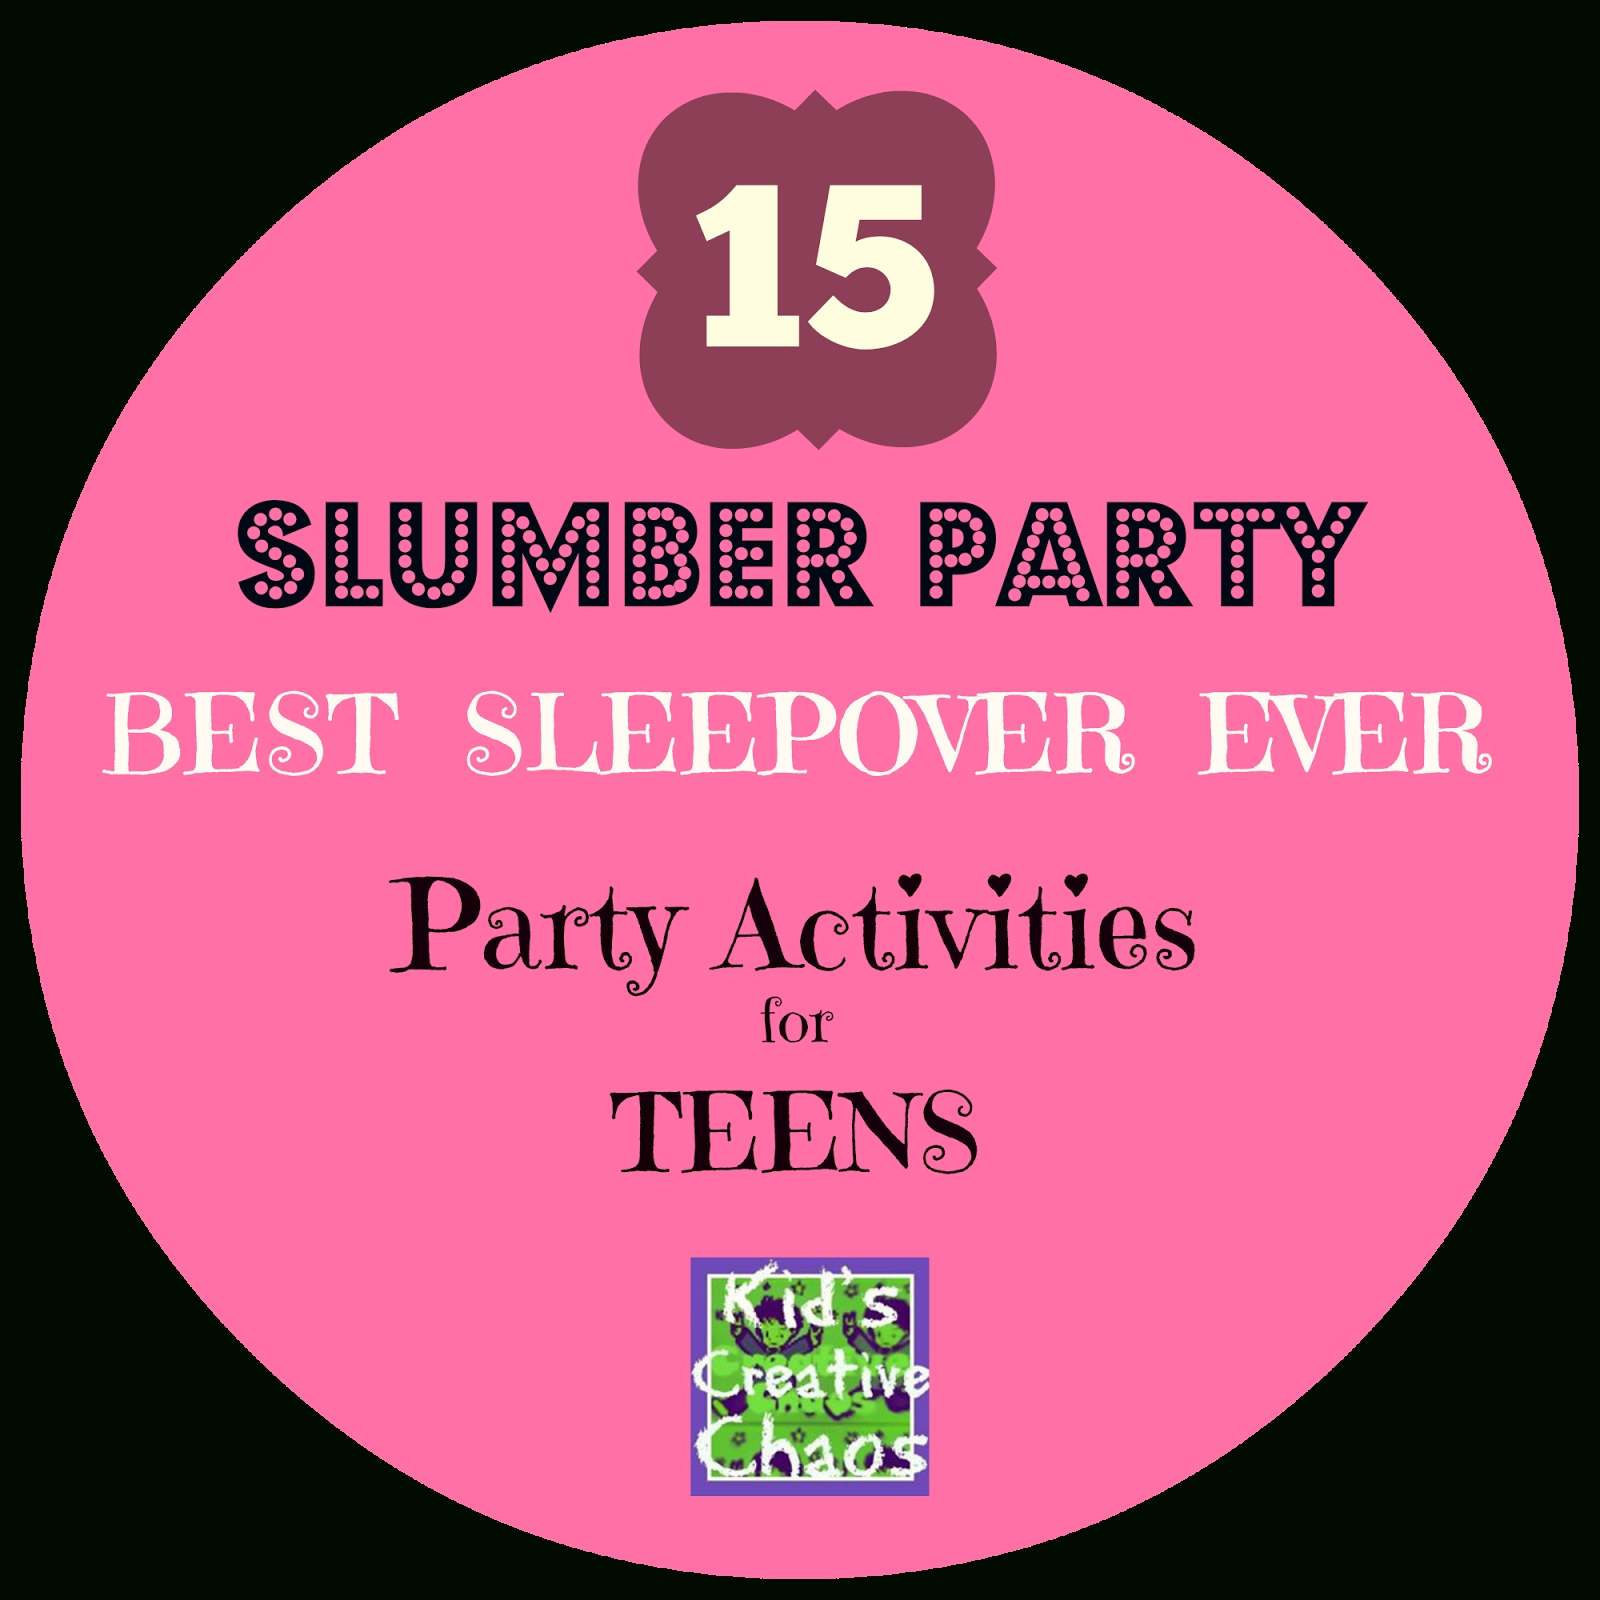 10 Fantastic Fun Ideas For A Sleepover 15 slumber party games and activities for teen girls best sleepover 1 2020